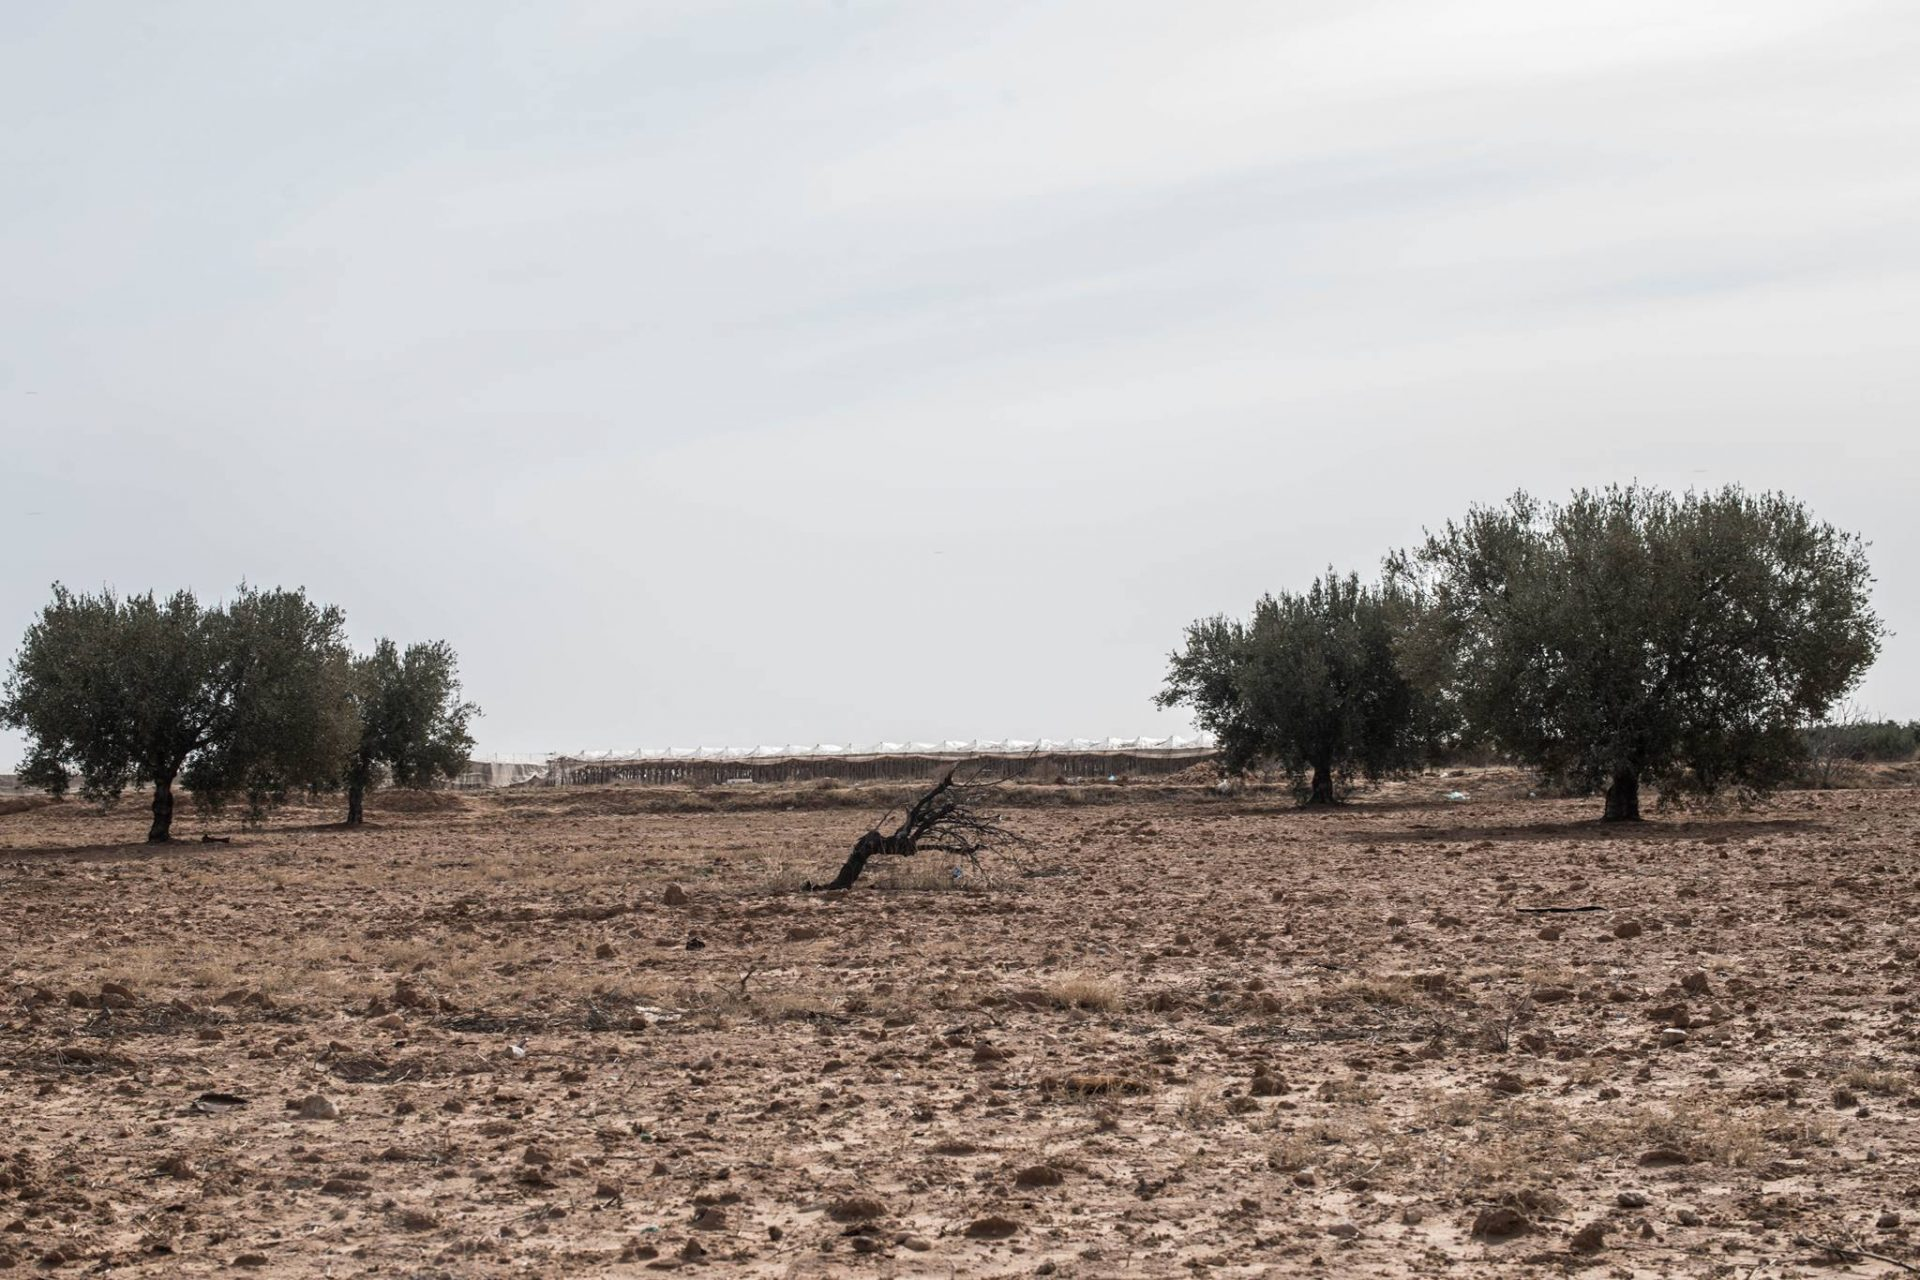 Tunisia: pollution and drought